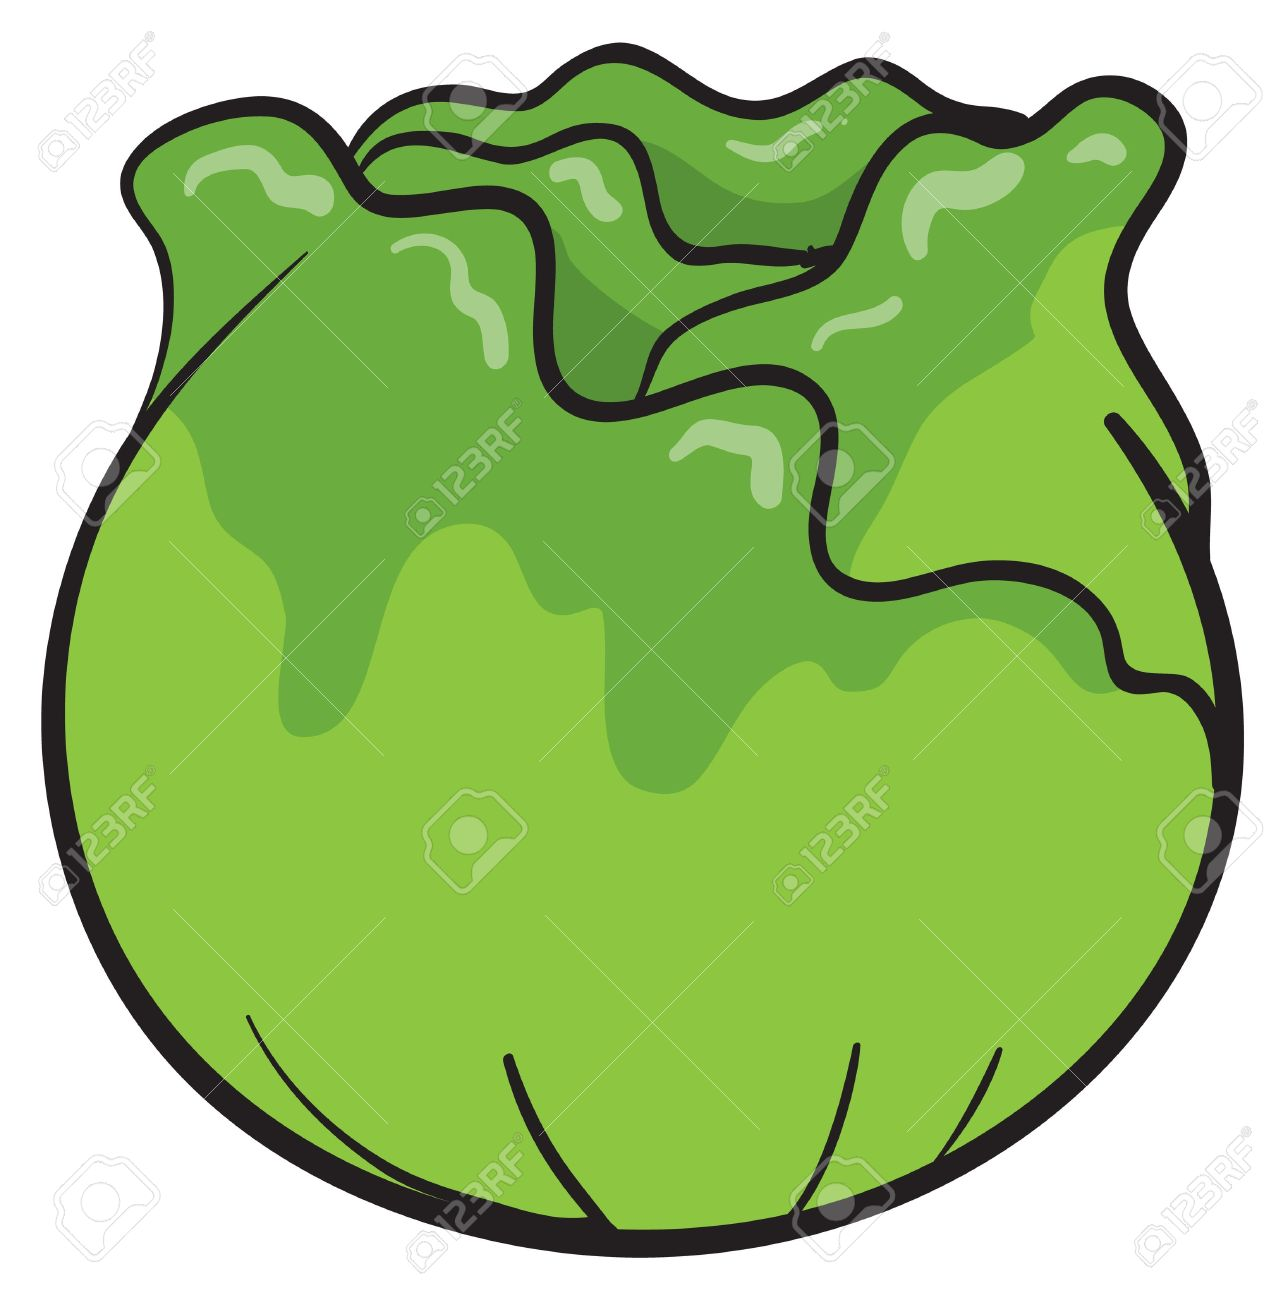 Cabbage clipart animated #4